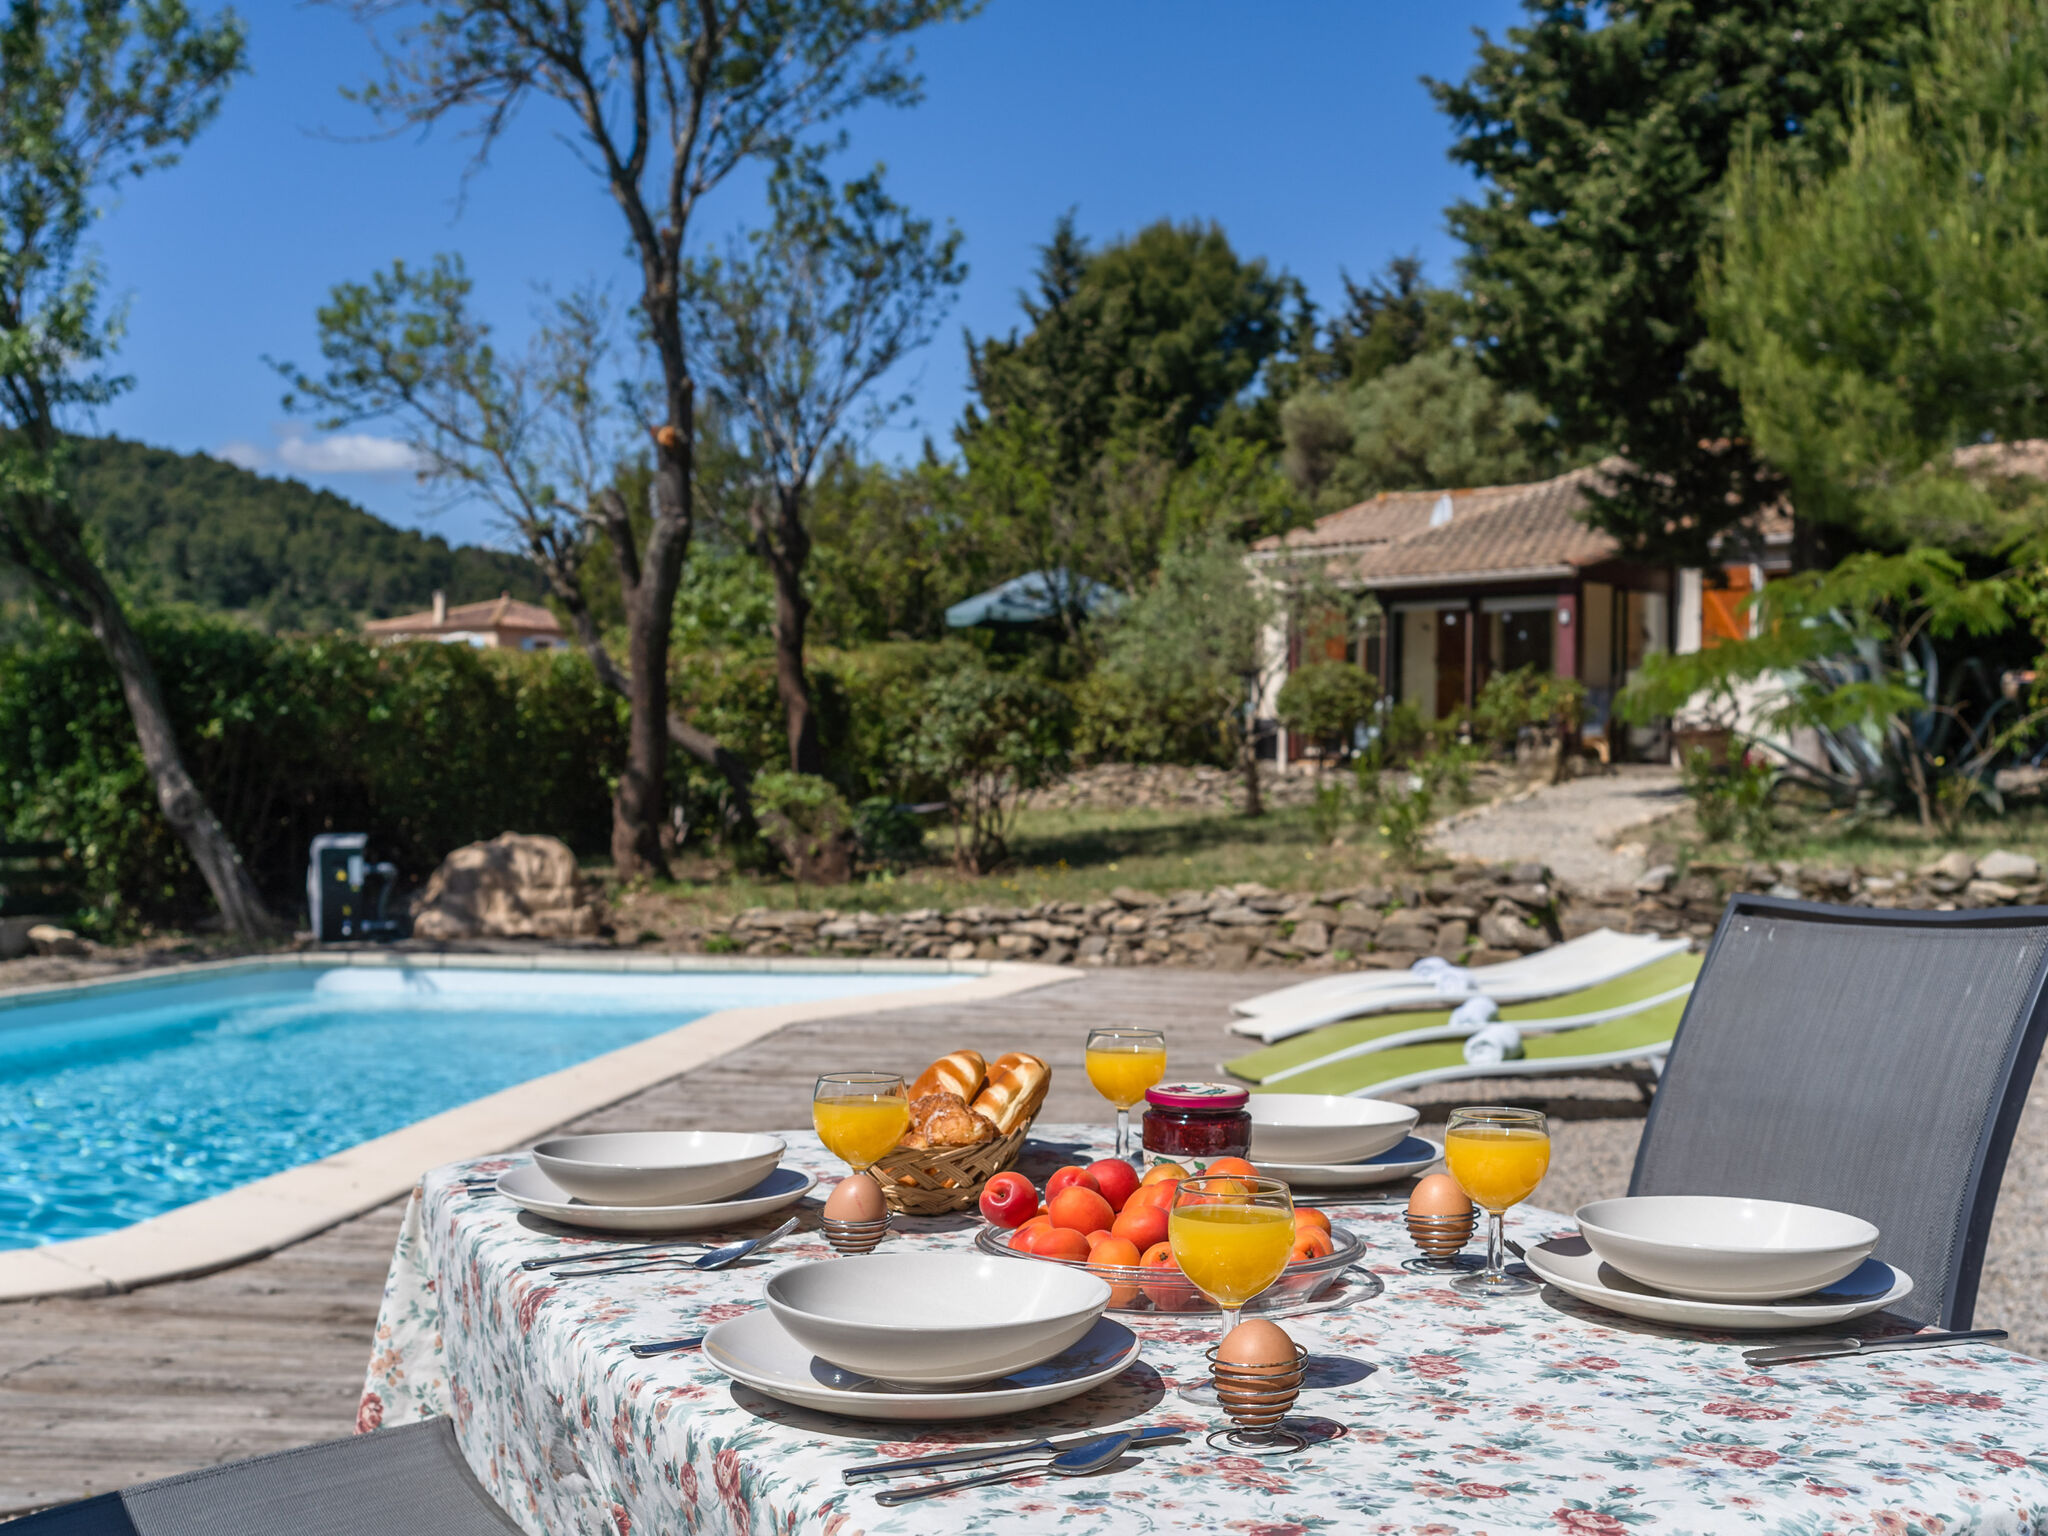 Sold - Furnished cottage with lovely view  in Montbrun des Corbières (11700 - Aude)